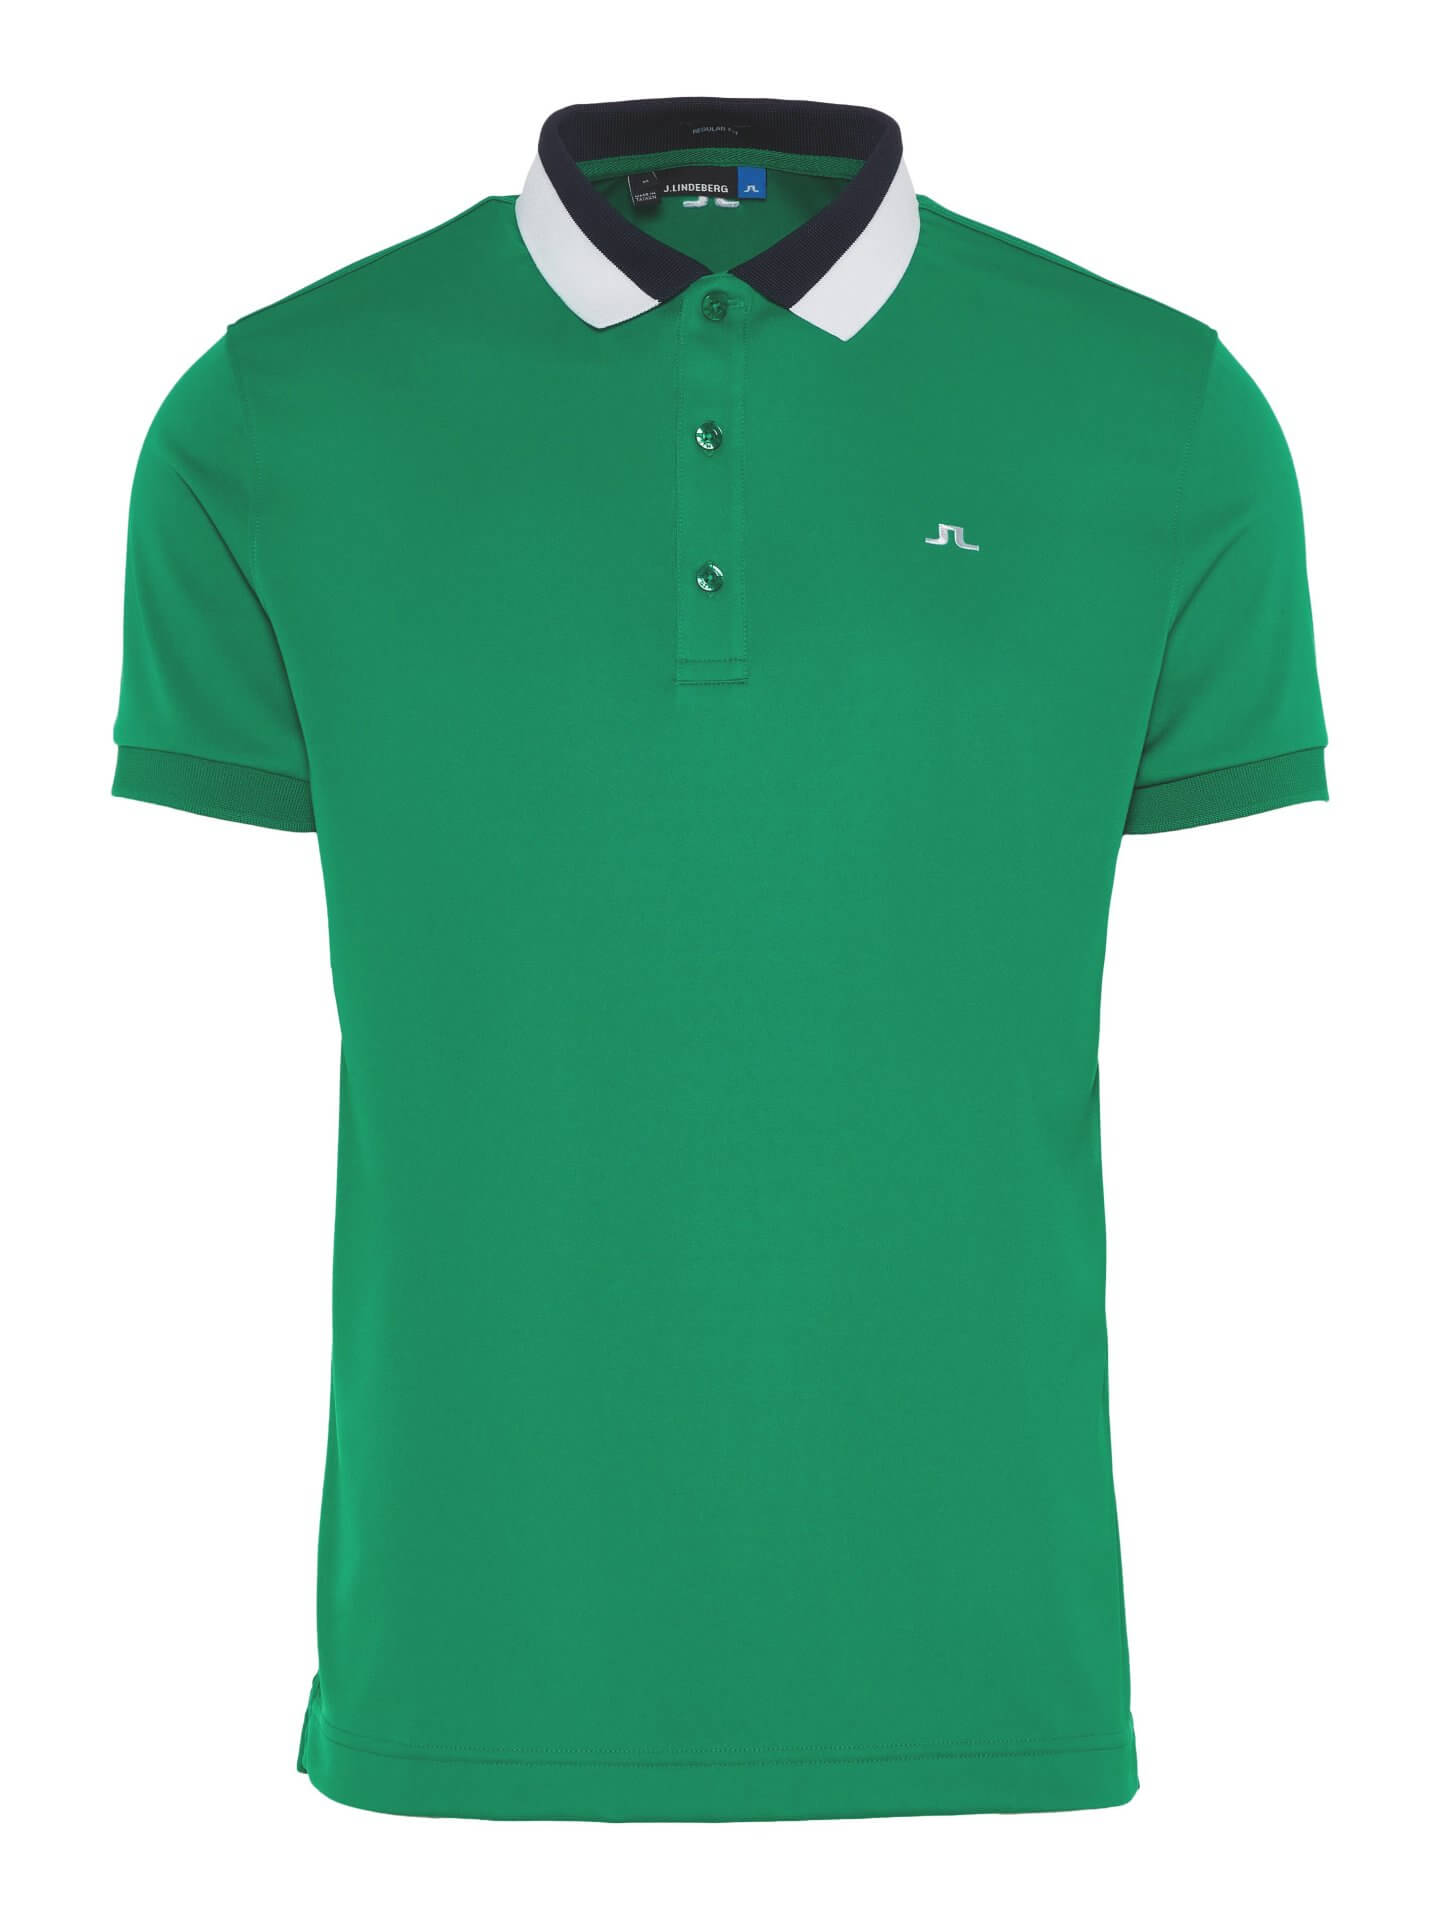 J.Lindeberg - MAT Regular TX Jersey in golf green